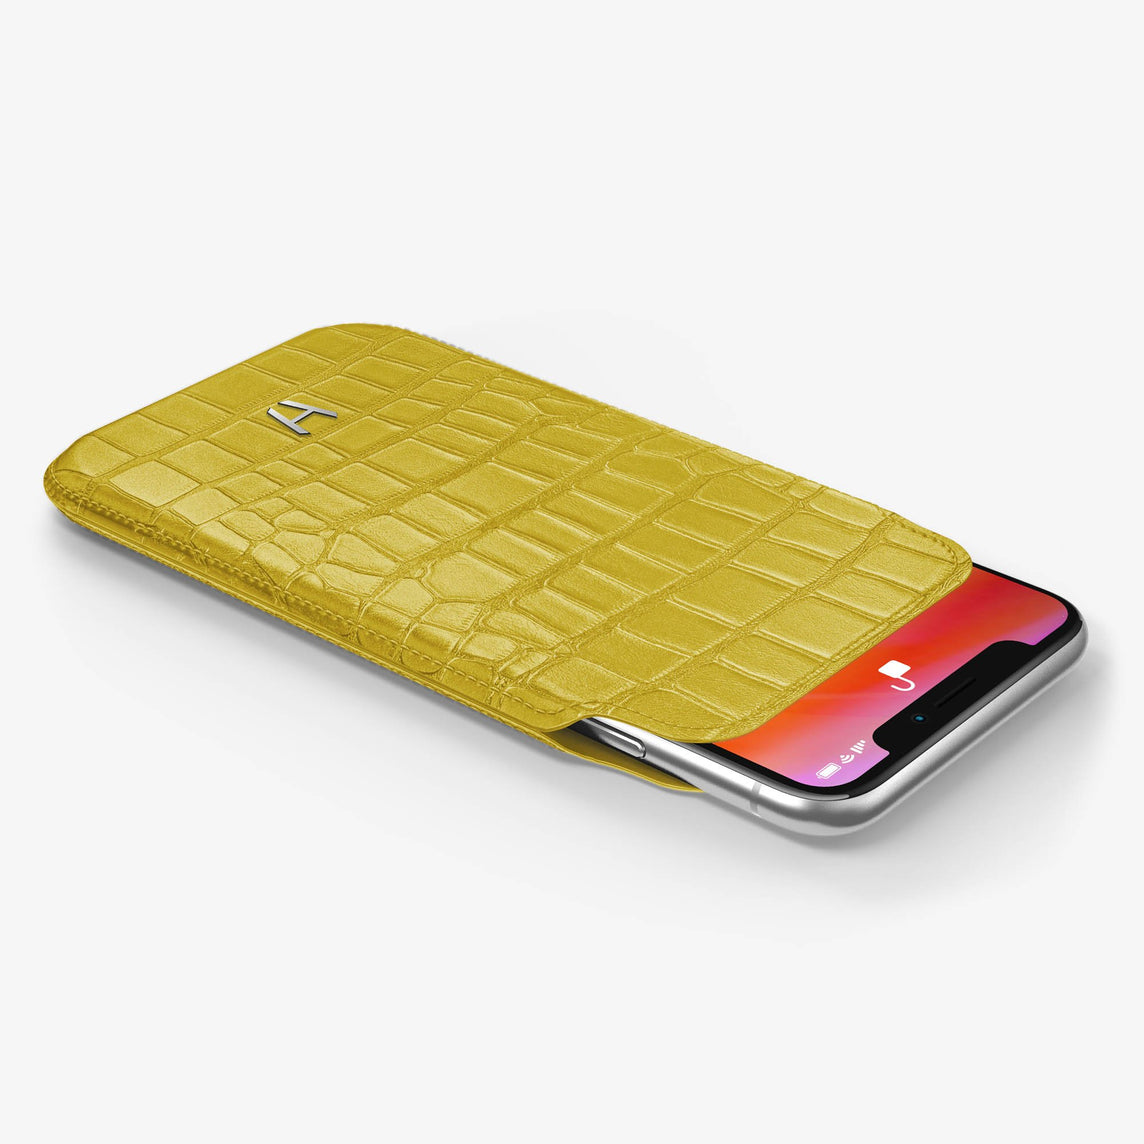 Alligator [iPhone Sleeve Case] [model:iphone-xs-case] [colour:yellow] [finishing:stainless-steel]